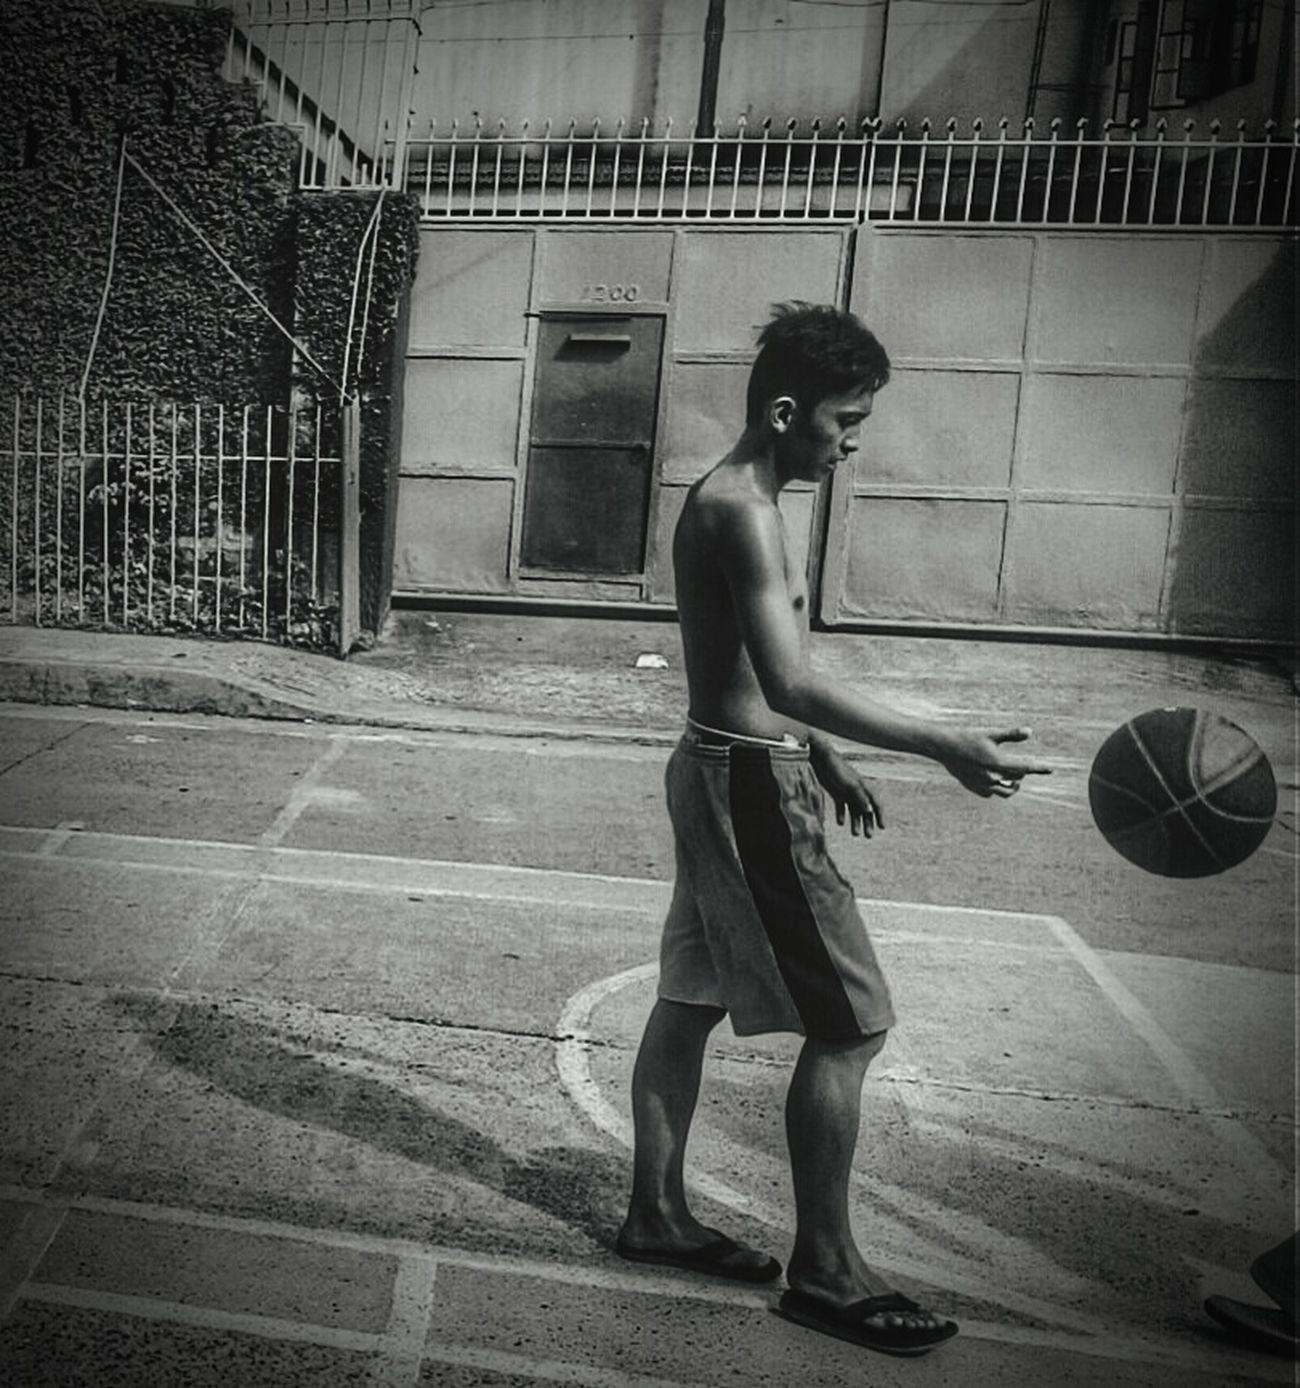 Heat touches skin. Blackandwhite Black And White Blackandwhite Photography Streetphoto_bw Street Photography The Moment - 2015 EyeEm Awards Eyeem Philippines Monochrome Streetbasketball Mobile Photography